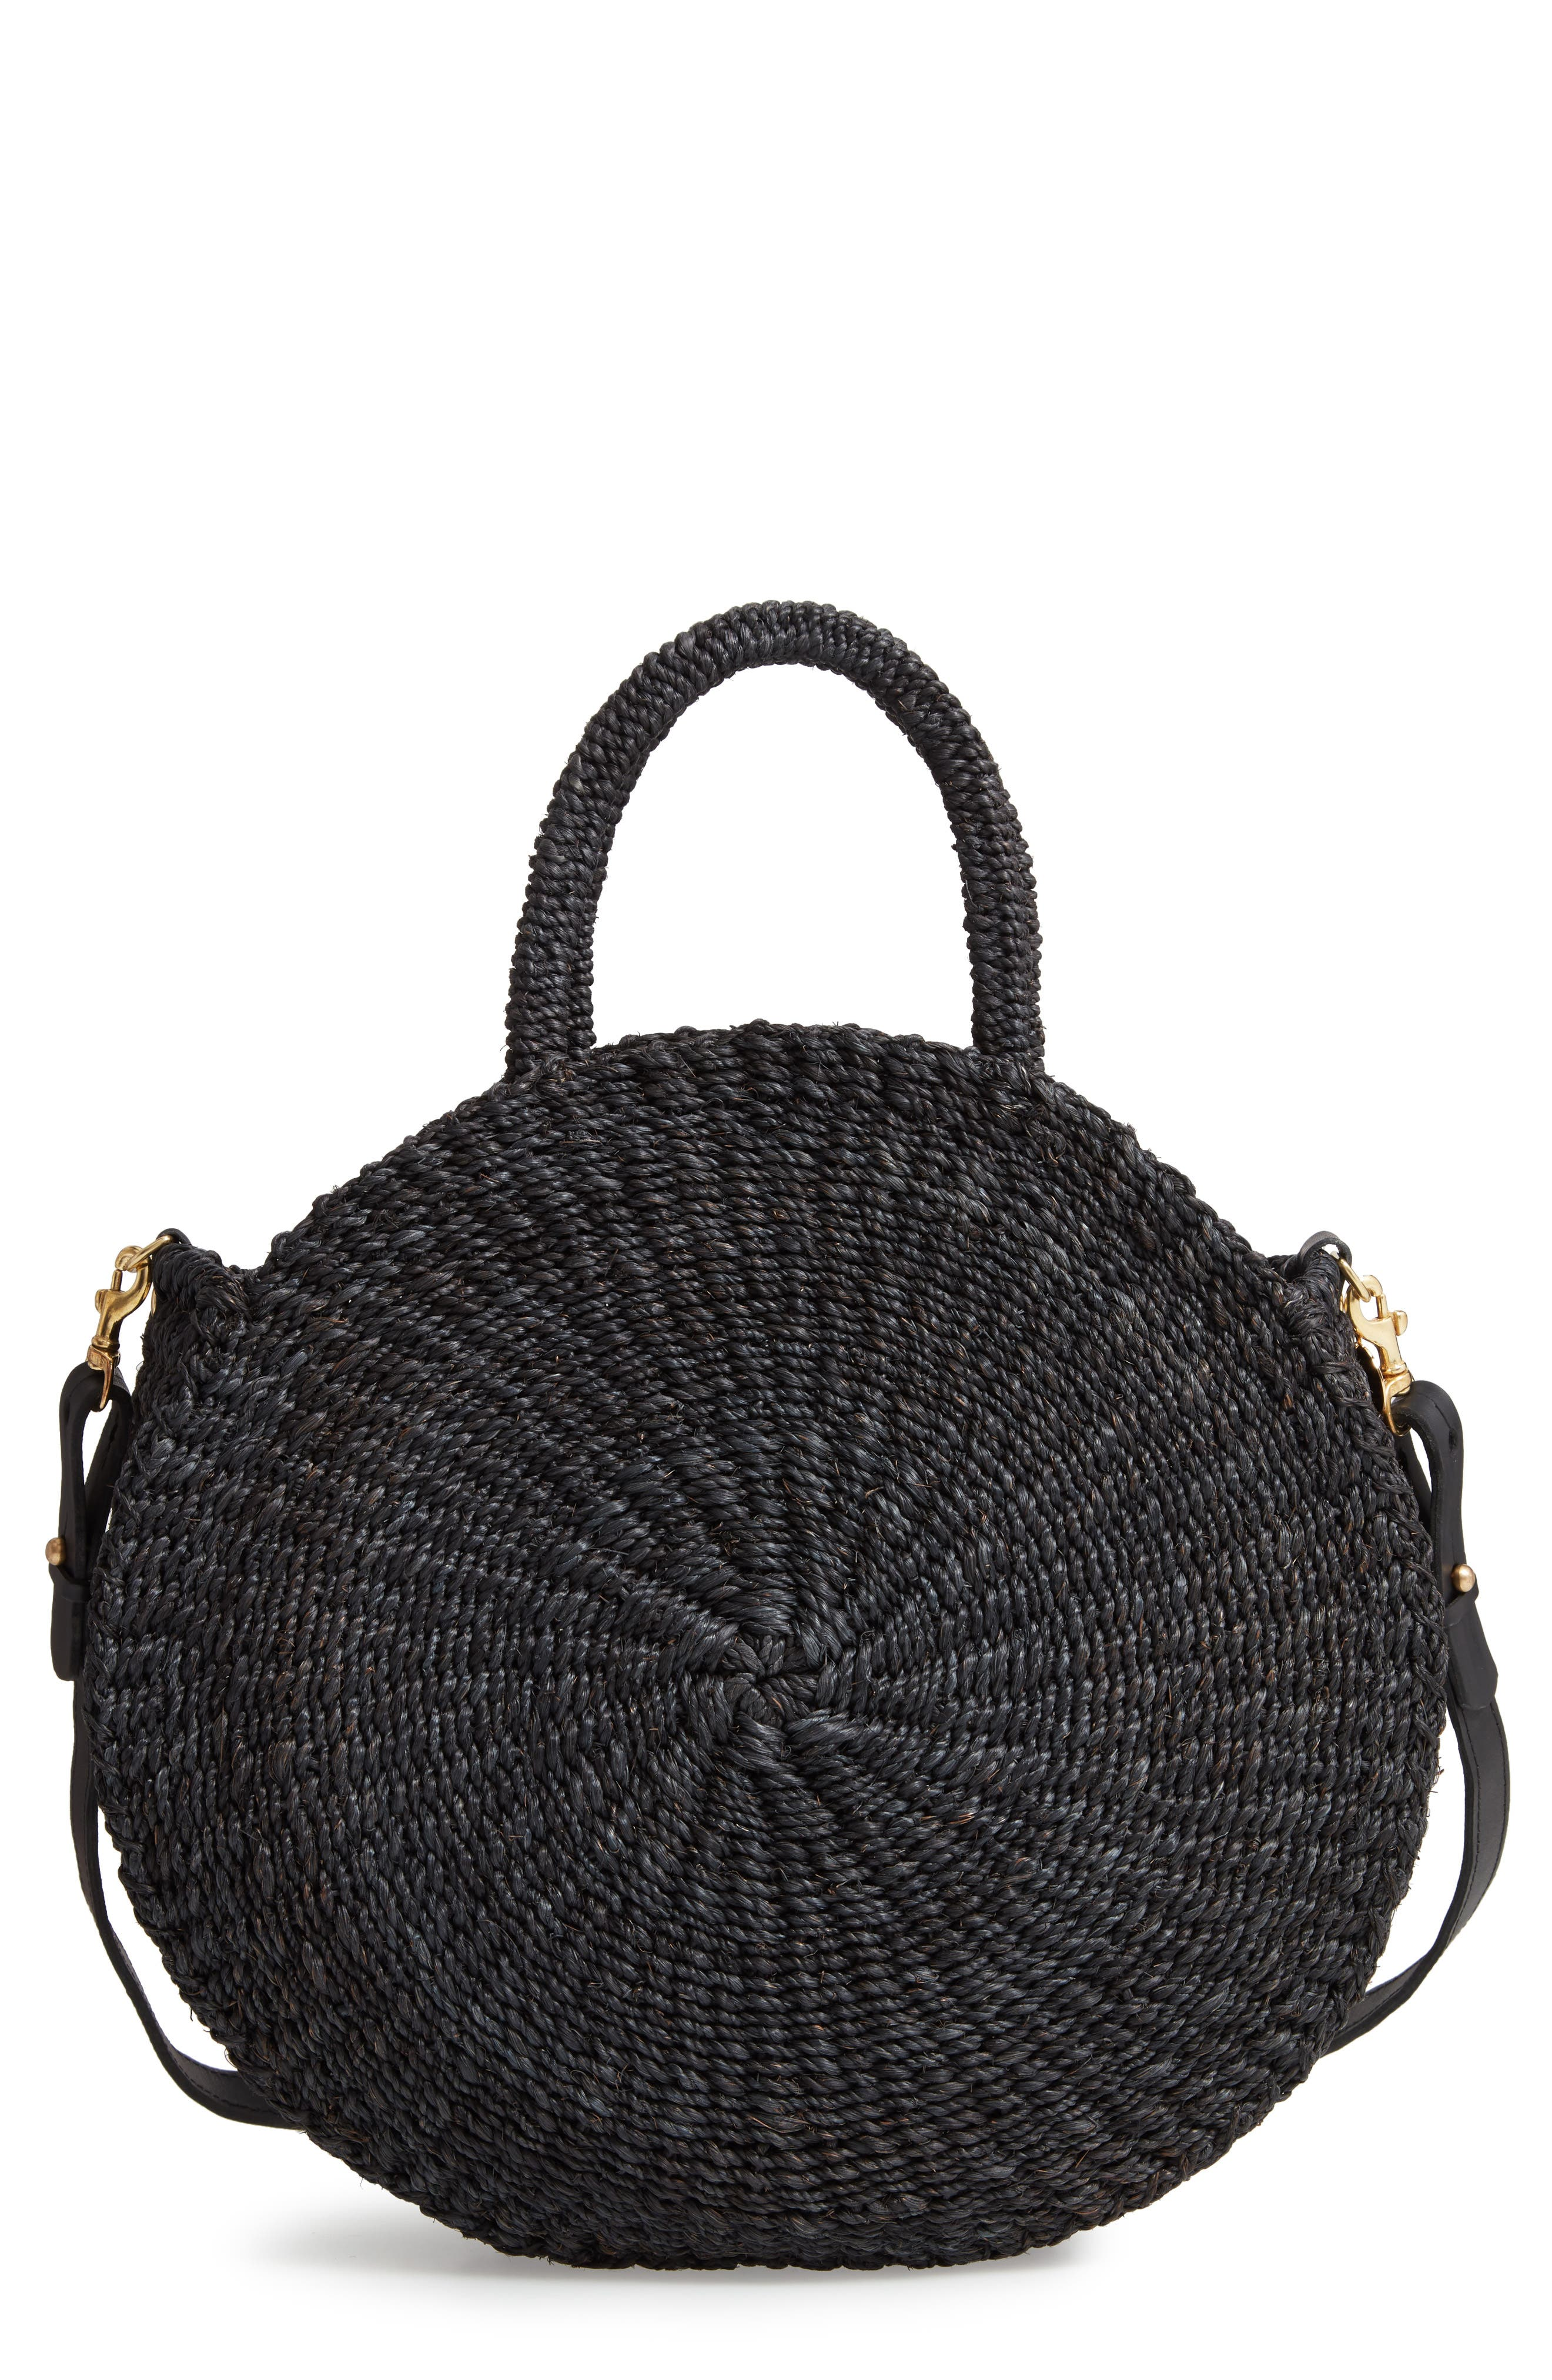 Alice Woven Sisal Straw Bag,                             Main thumbnail 1, color,                             BLACK